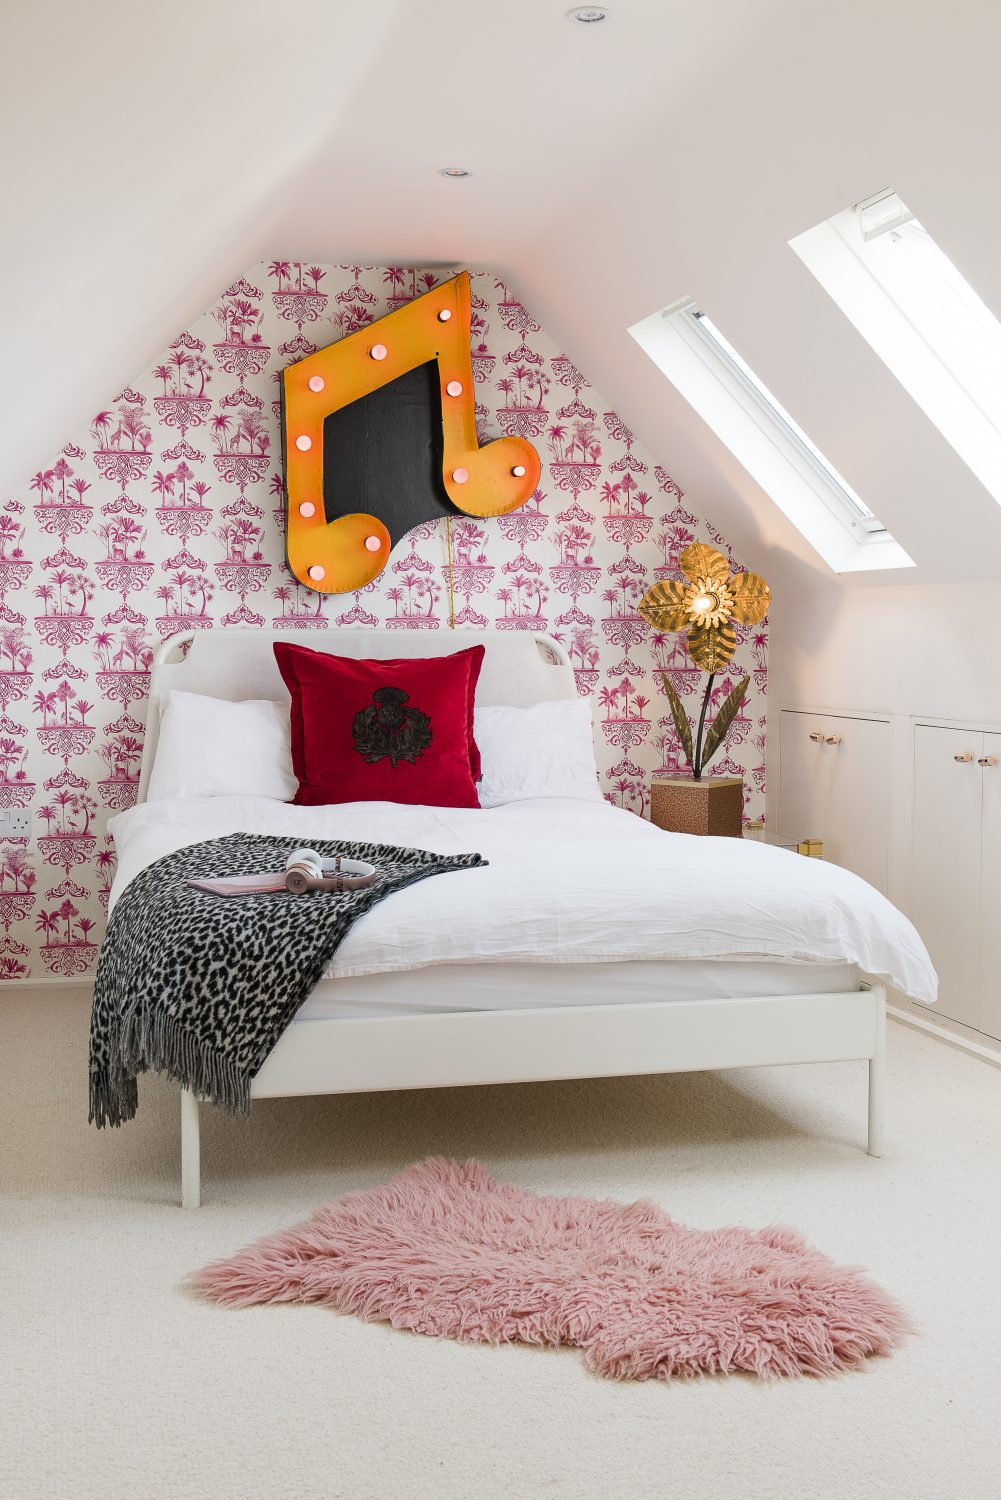 Daughter Madeline's bedroom. A metal music light with yellow and pink bulbs hangs above the bed